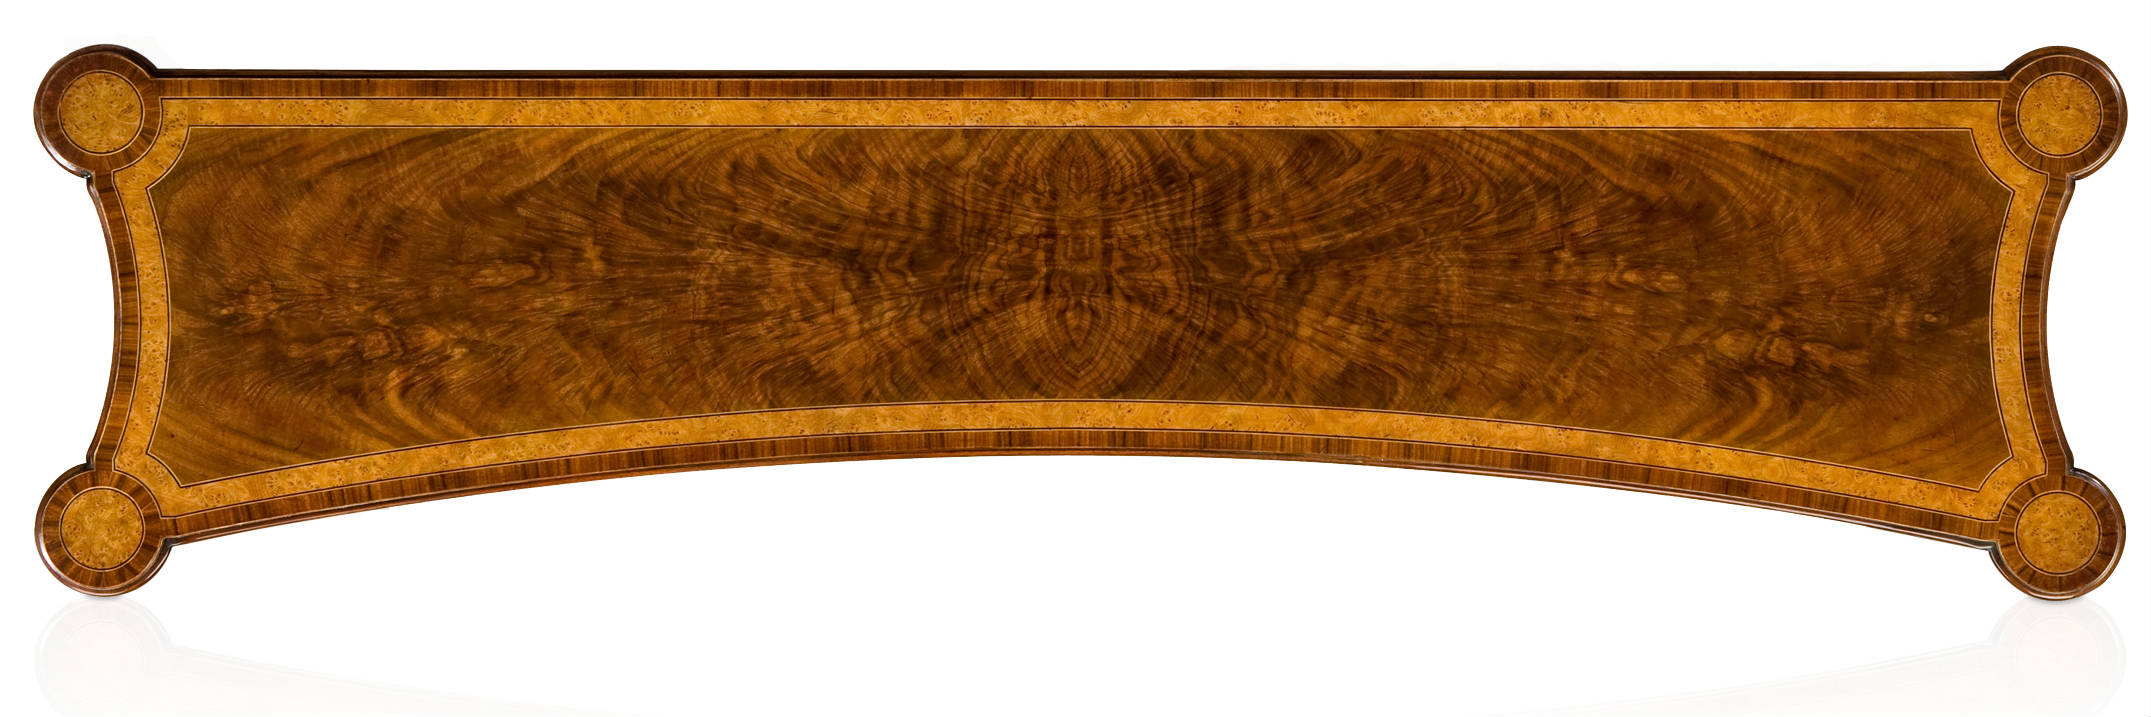 Walnut and yew burl veneered console table